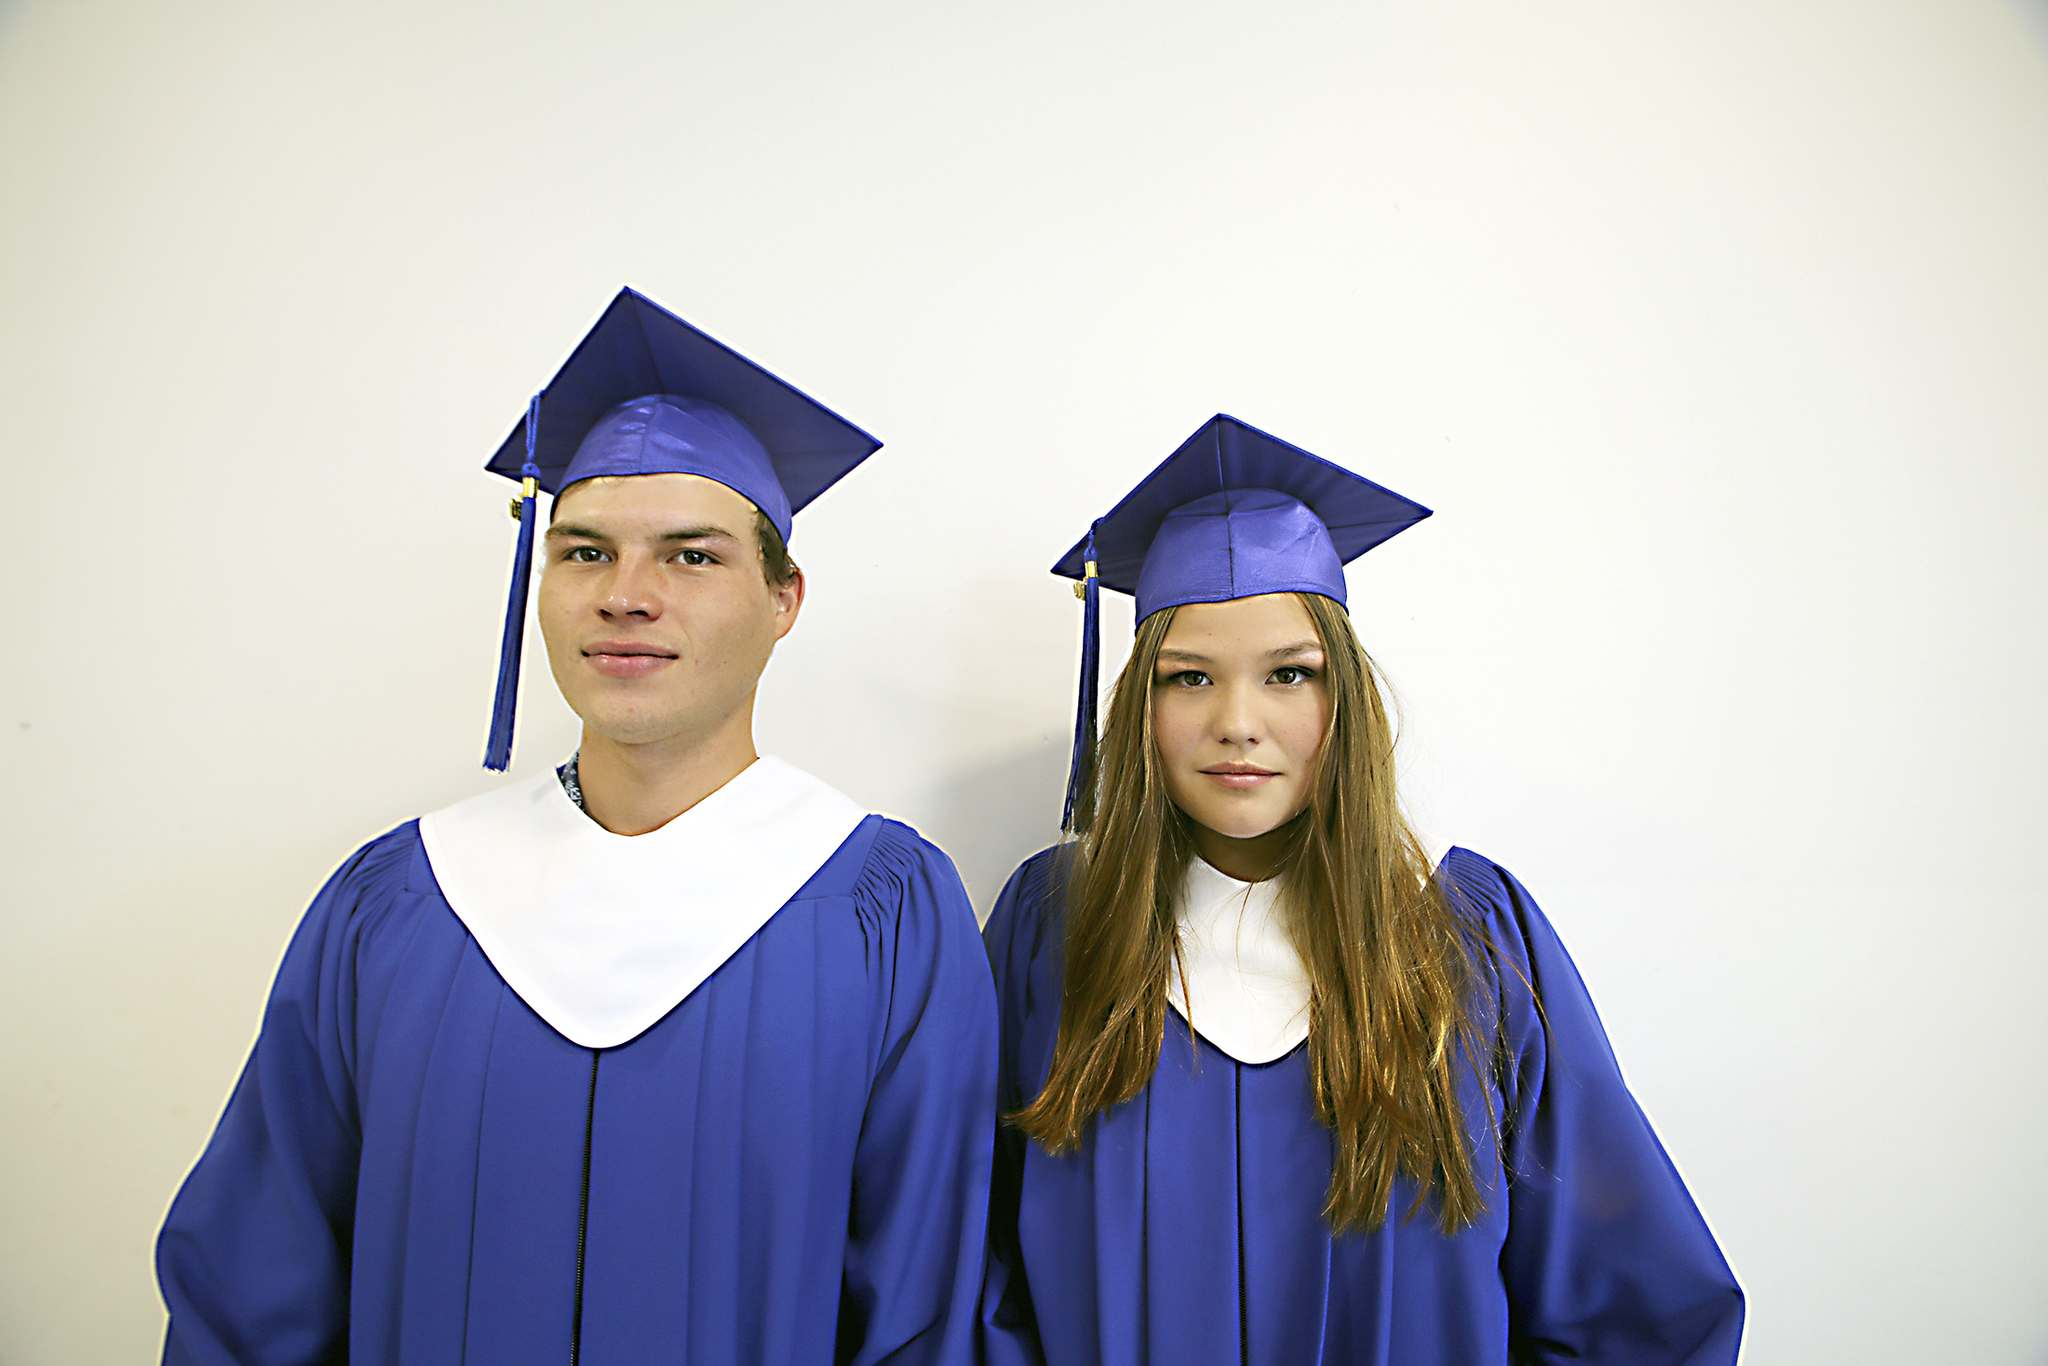 Siblings Blake and Cheyenne Fleury graduated together from Prairie Hope High School on Thursday.